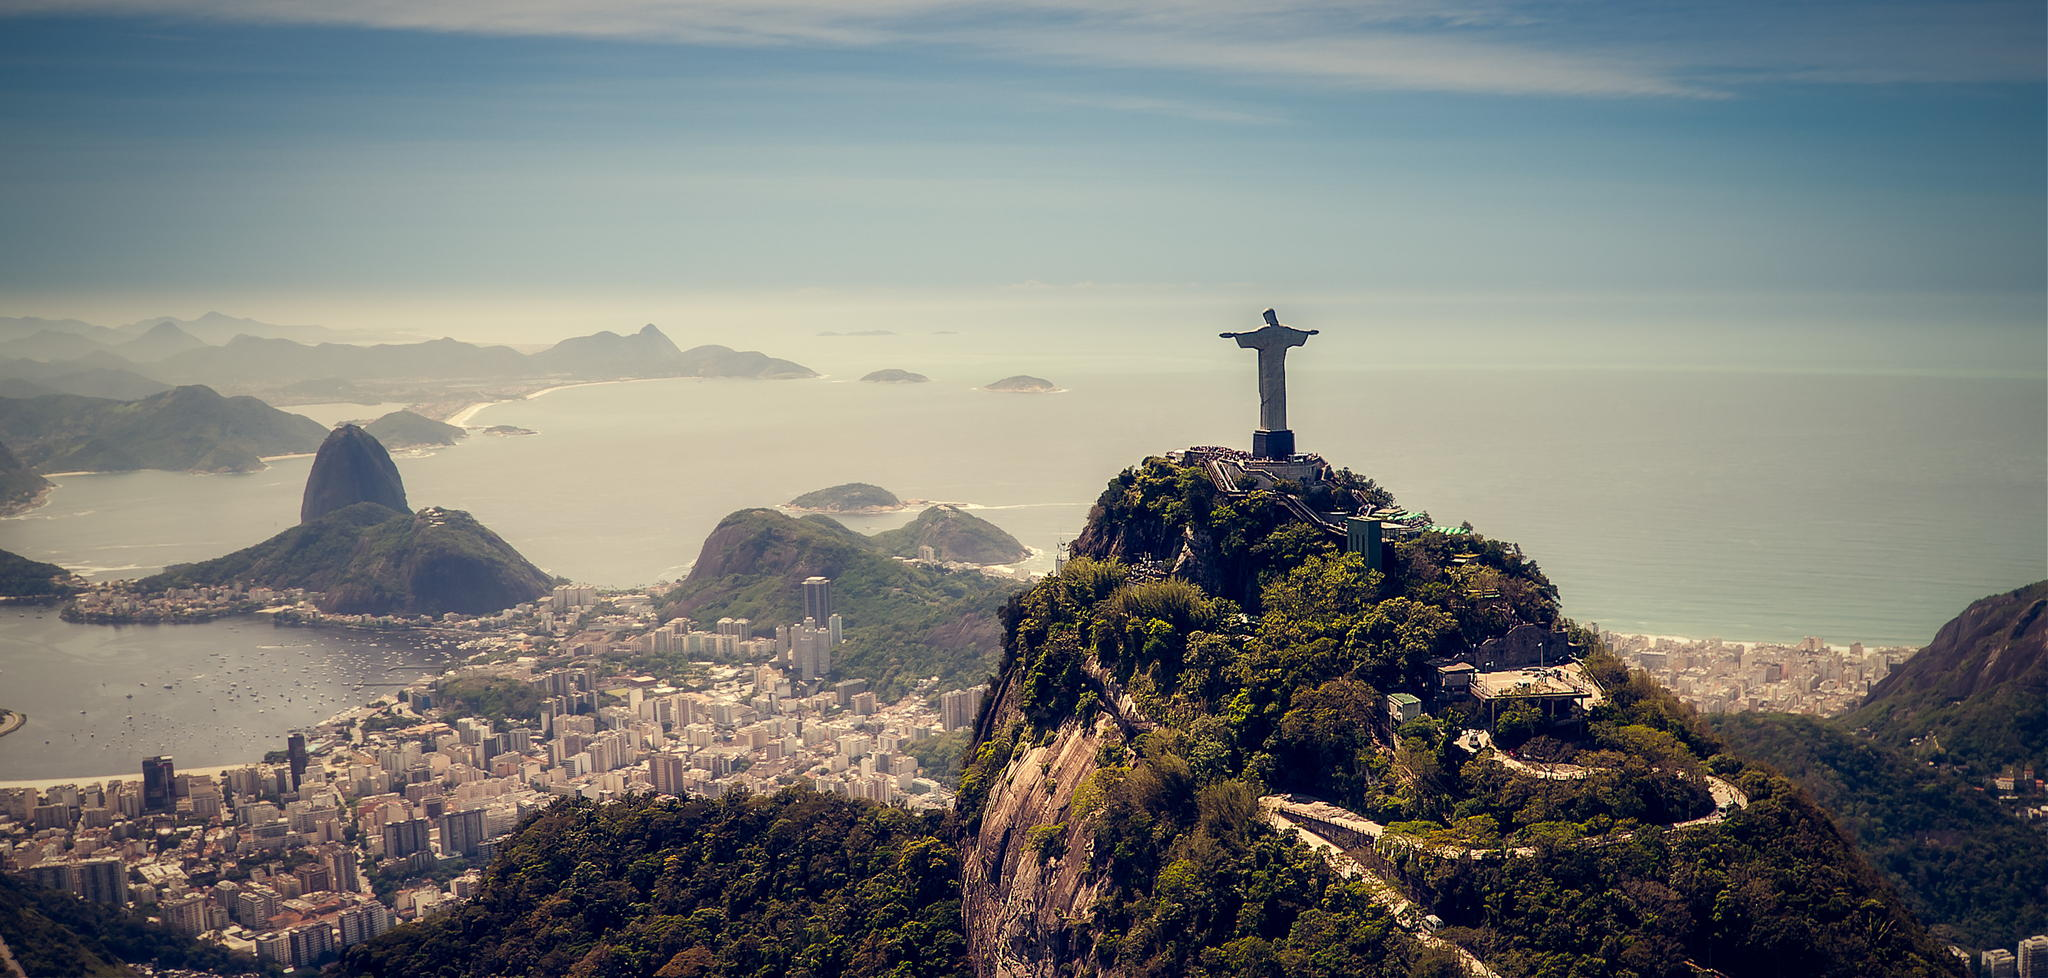 Rio de Janeiro, Marvelous City, UN's list of world heritage sites, UNESCO, world heritage site, Flamengo Park, Sugarloaf Mountain, the Corcovado, Copacabana beach, the Botanical Garden, Tijuca forest